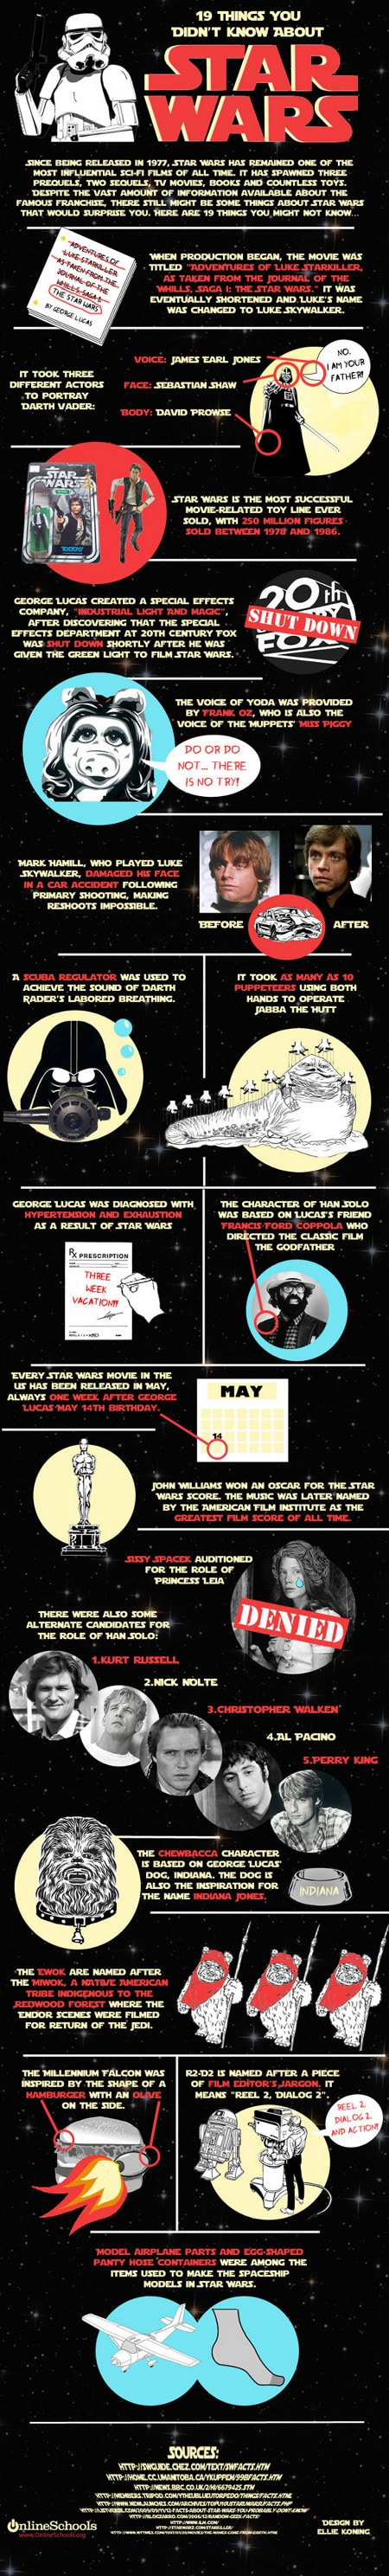 19 Things About Star Wars You Didn't Know [Infographic]